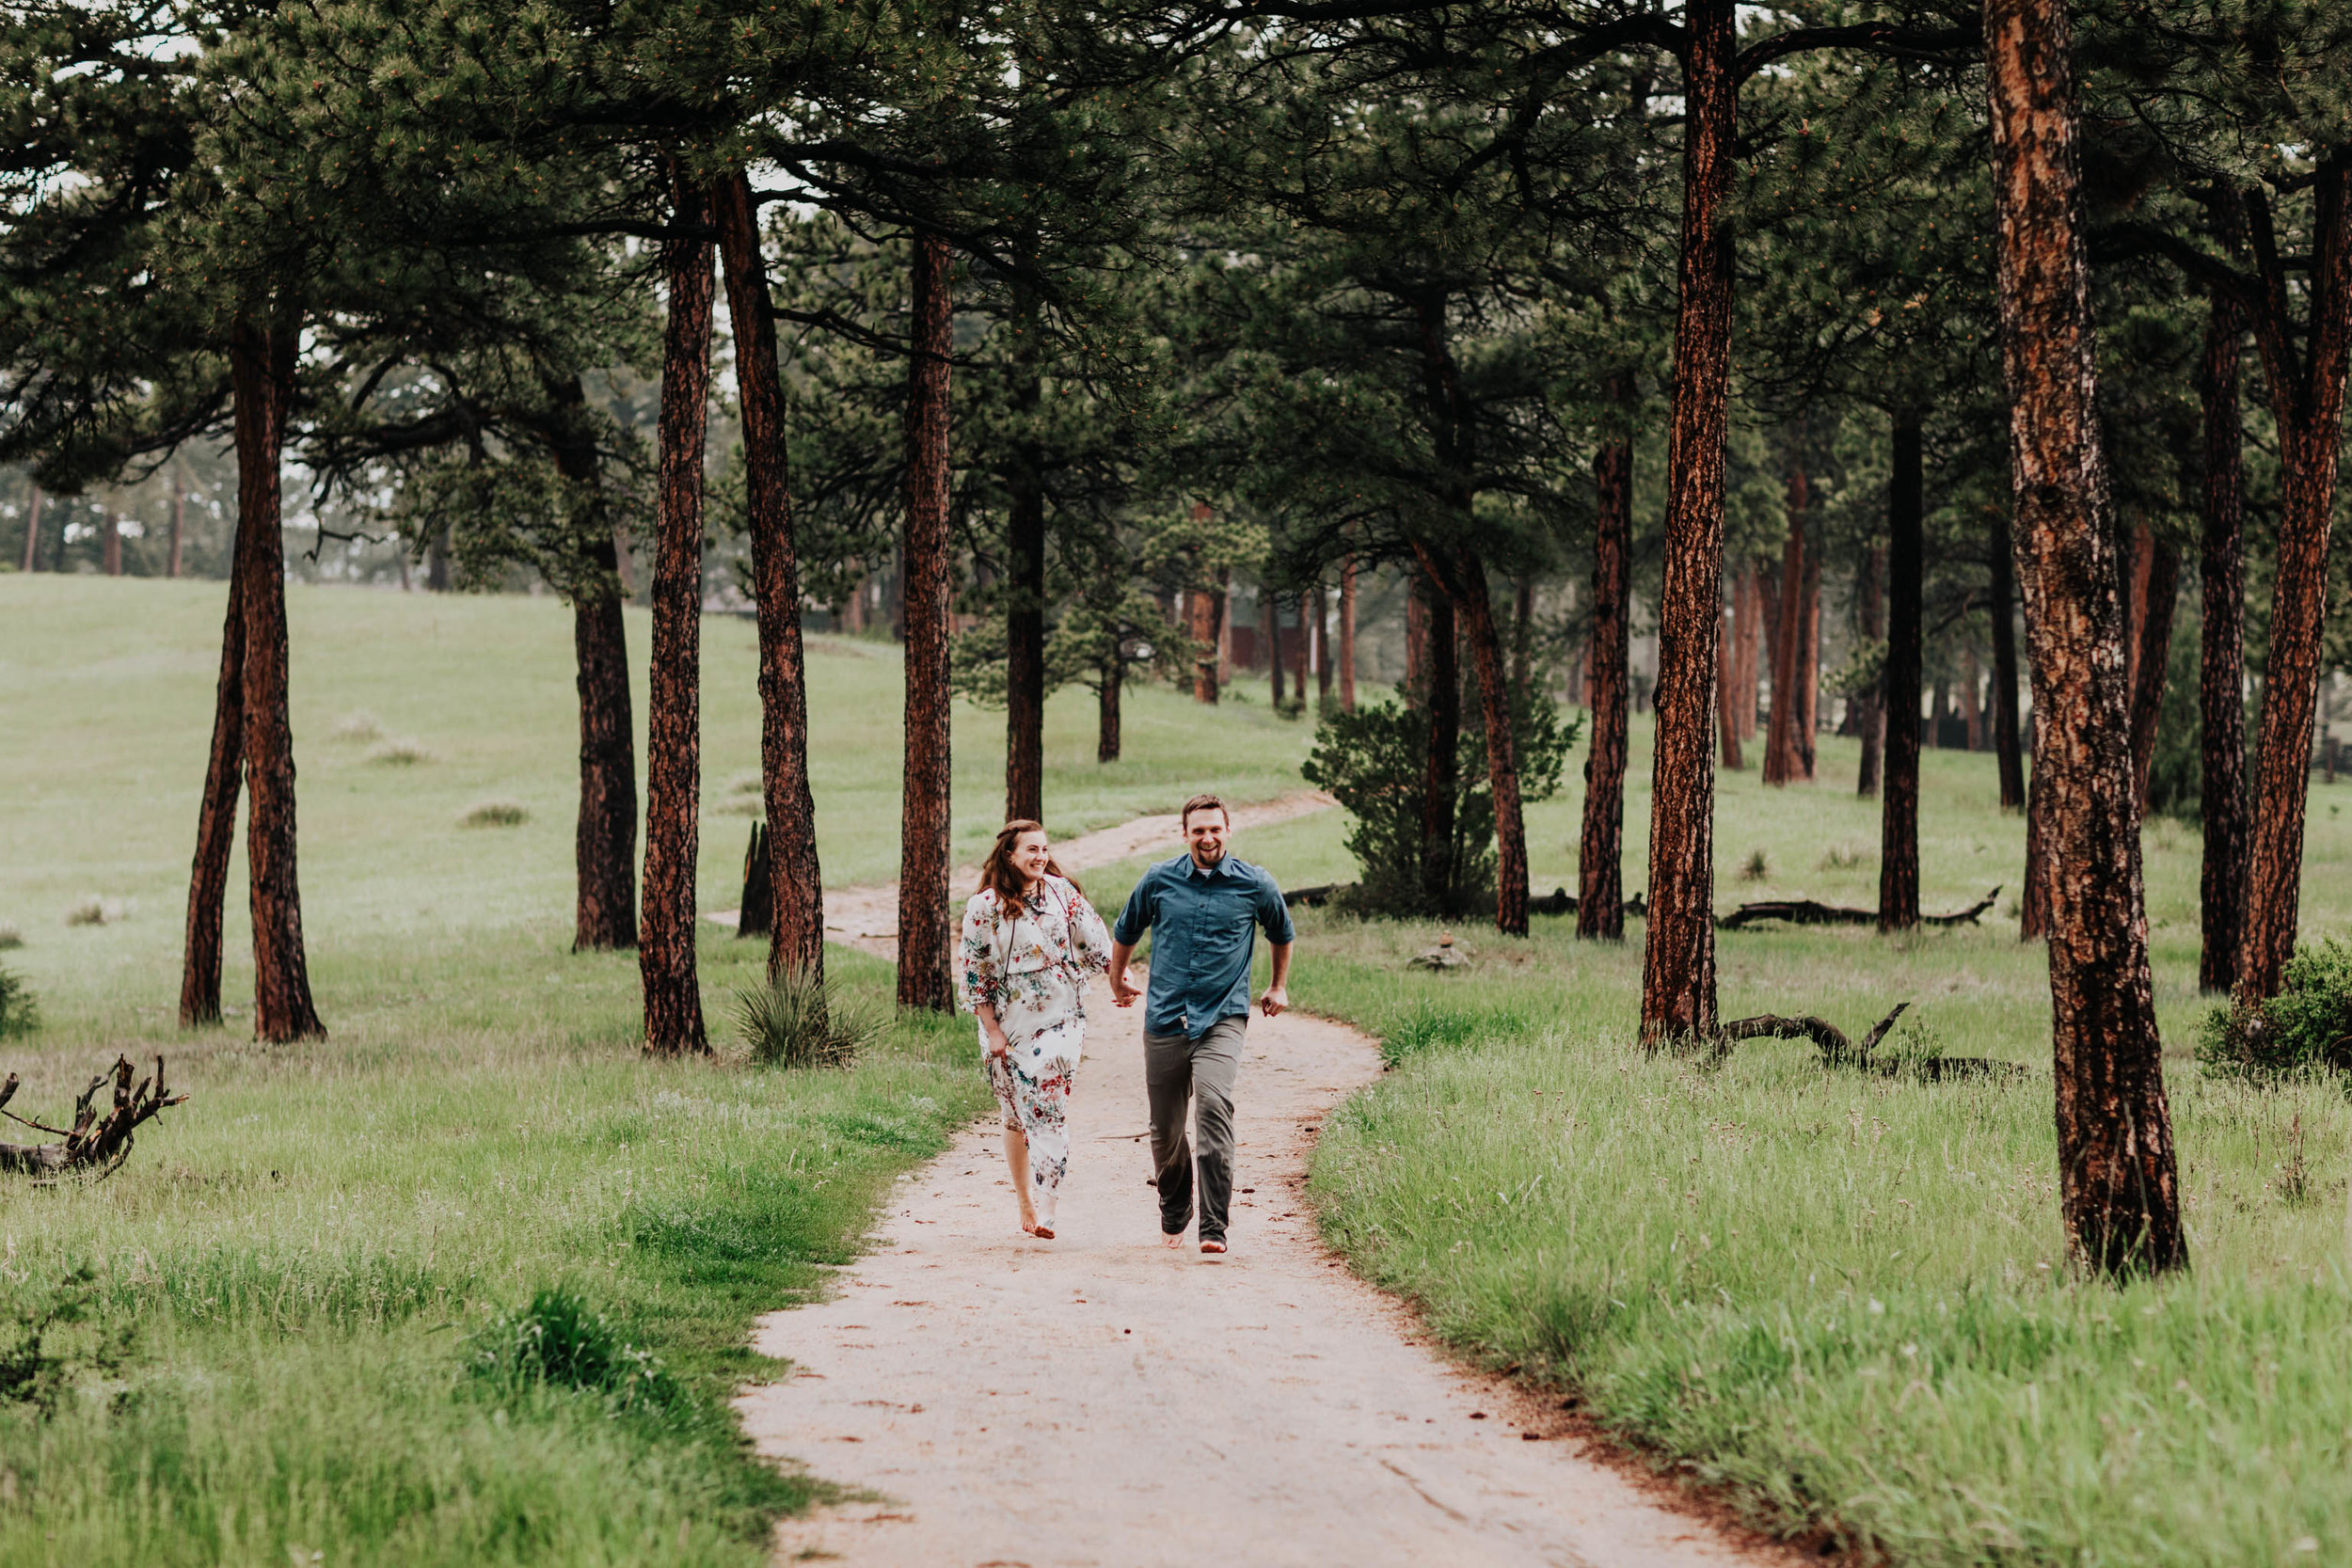 Sheena_Shahangian_Photography_Engagement_Photo_Shoot_Shelby_and_Andrew_Boulder_Colorado-108.jpg